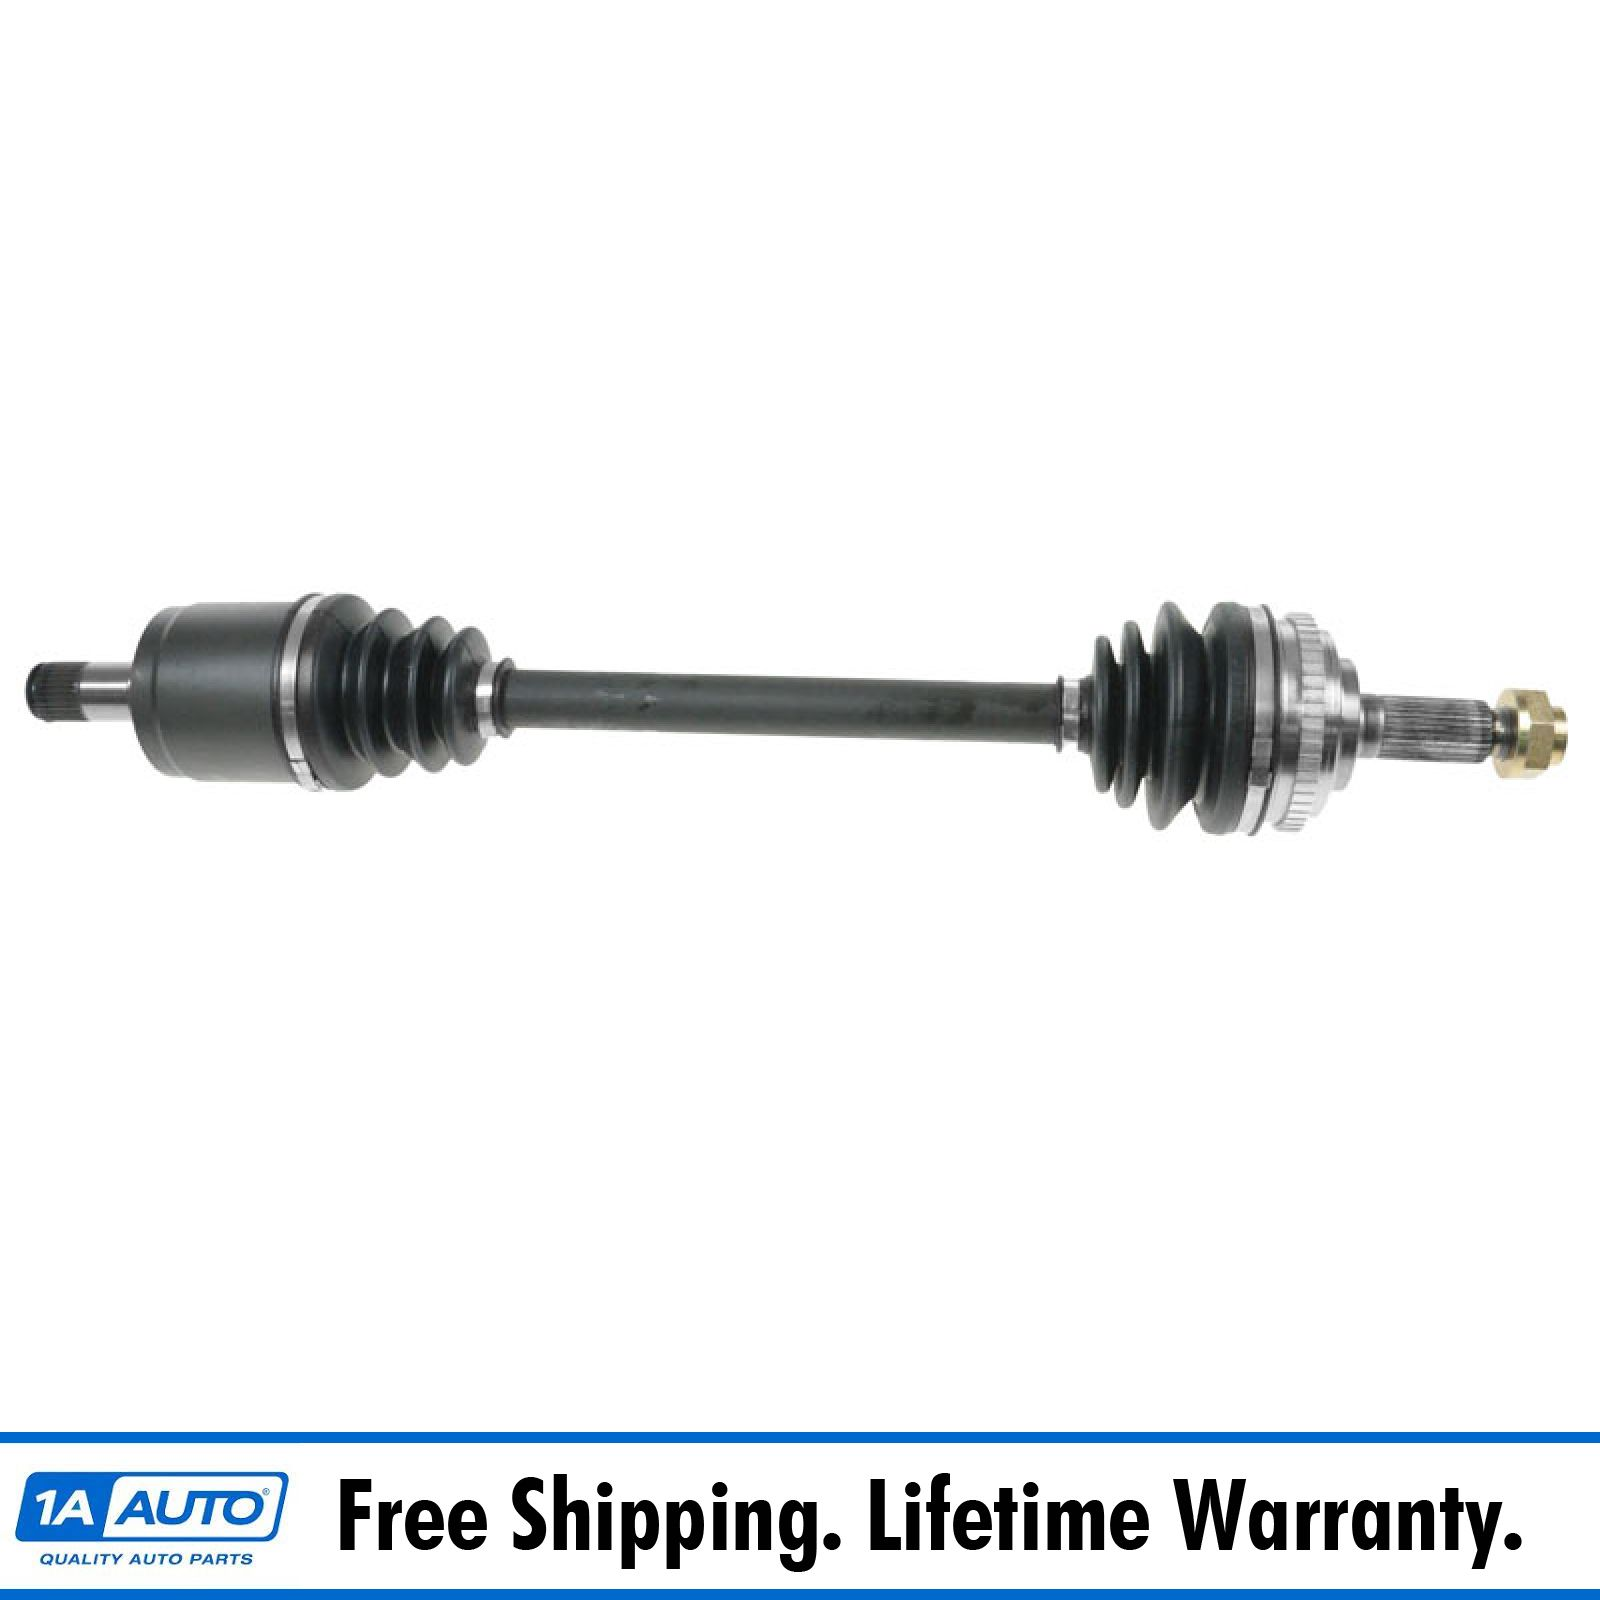 Front CV Axle Shaft Driver Side Left LH A1 CARDONE For